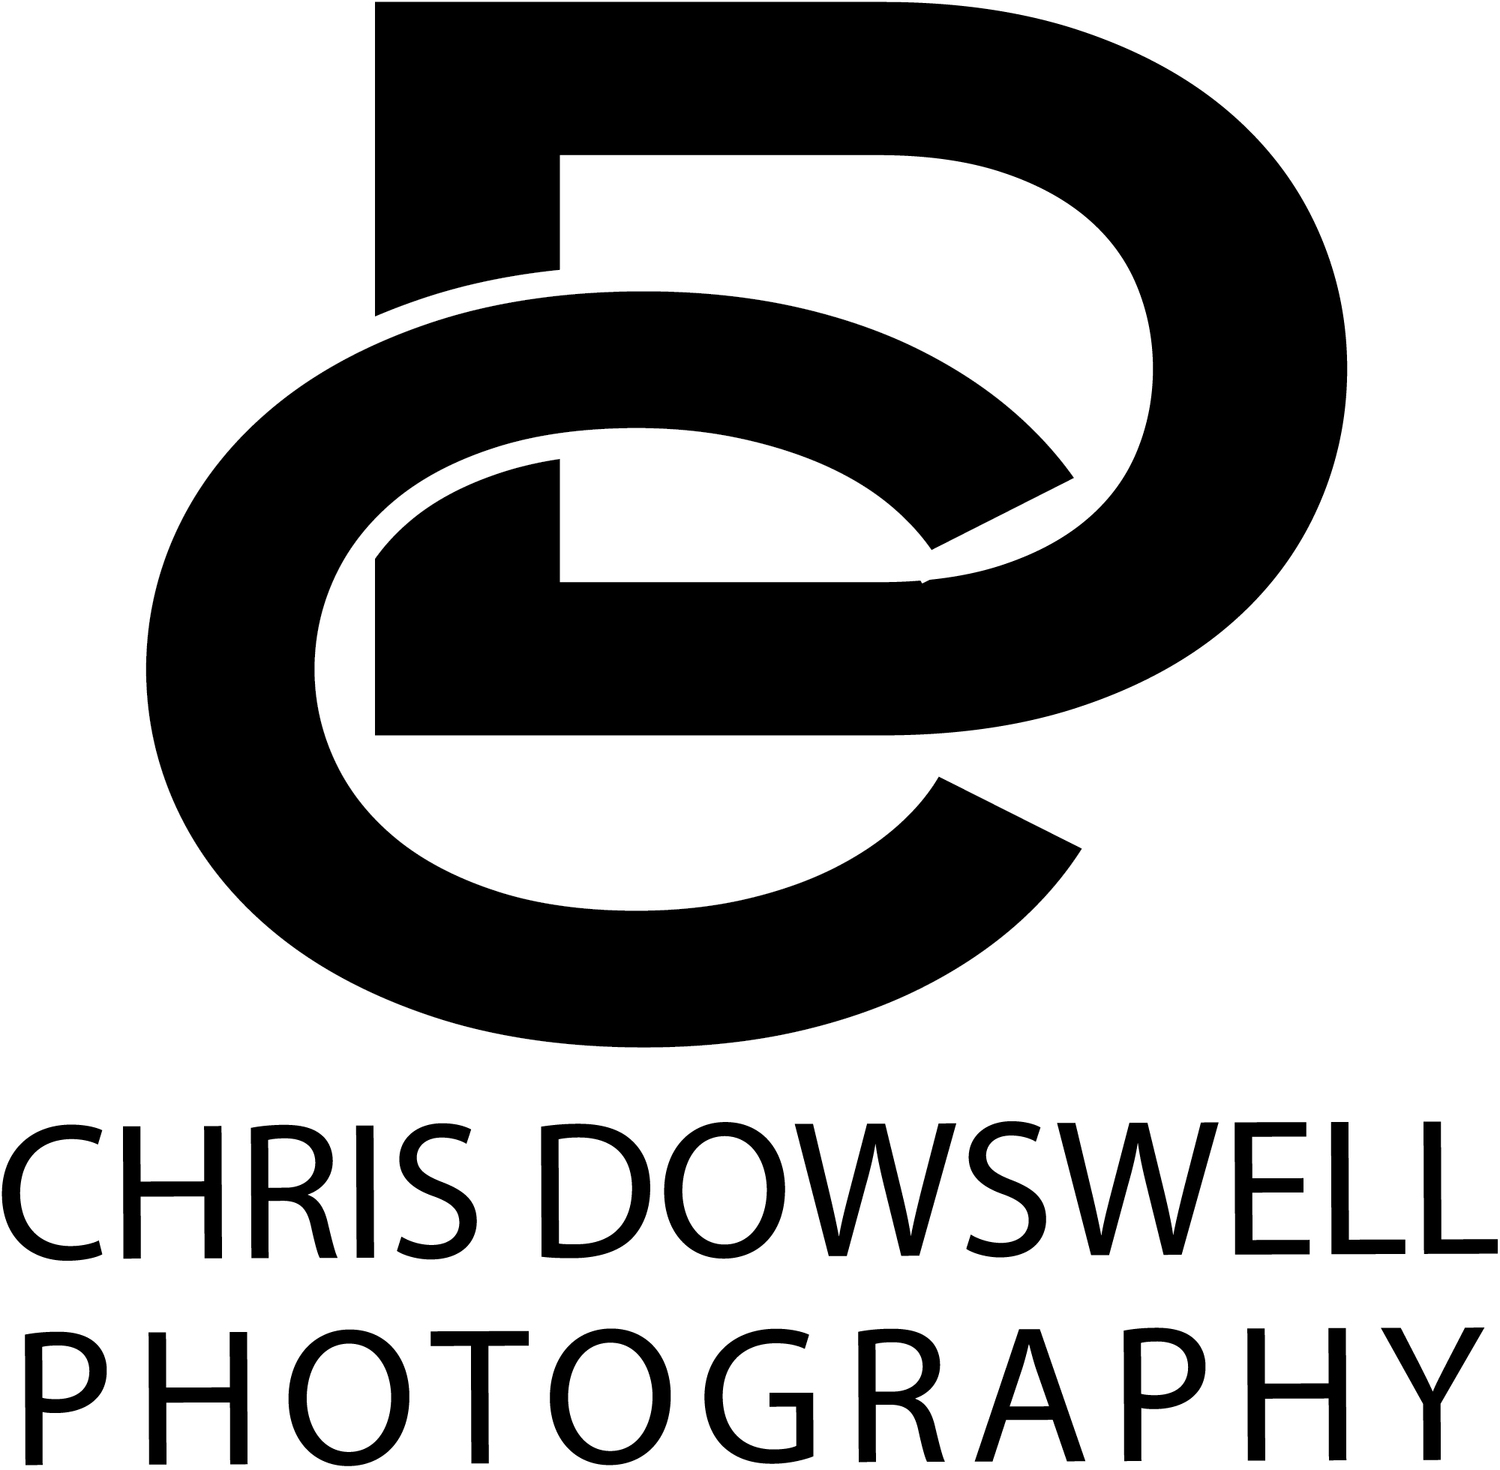 Brampton portrait photographer and headshot photographer, serving Toronto, Mississauga and the Greater Toronto Area.